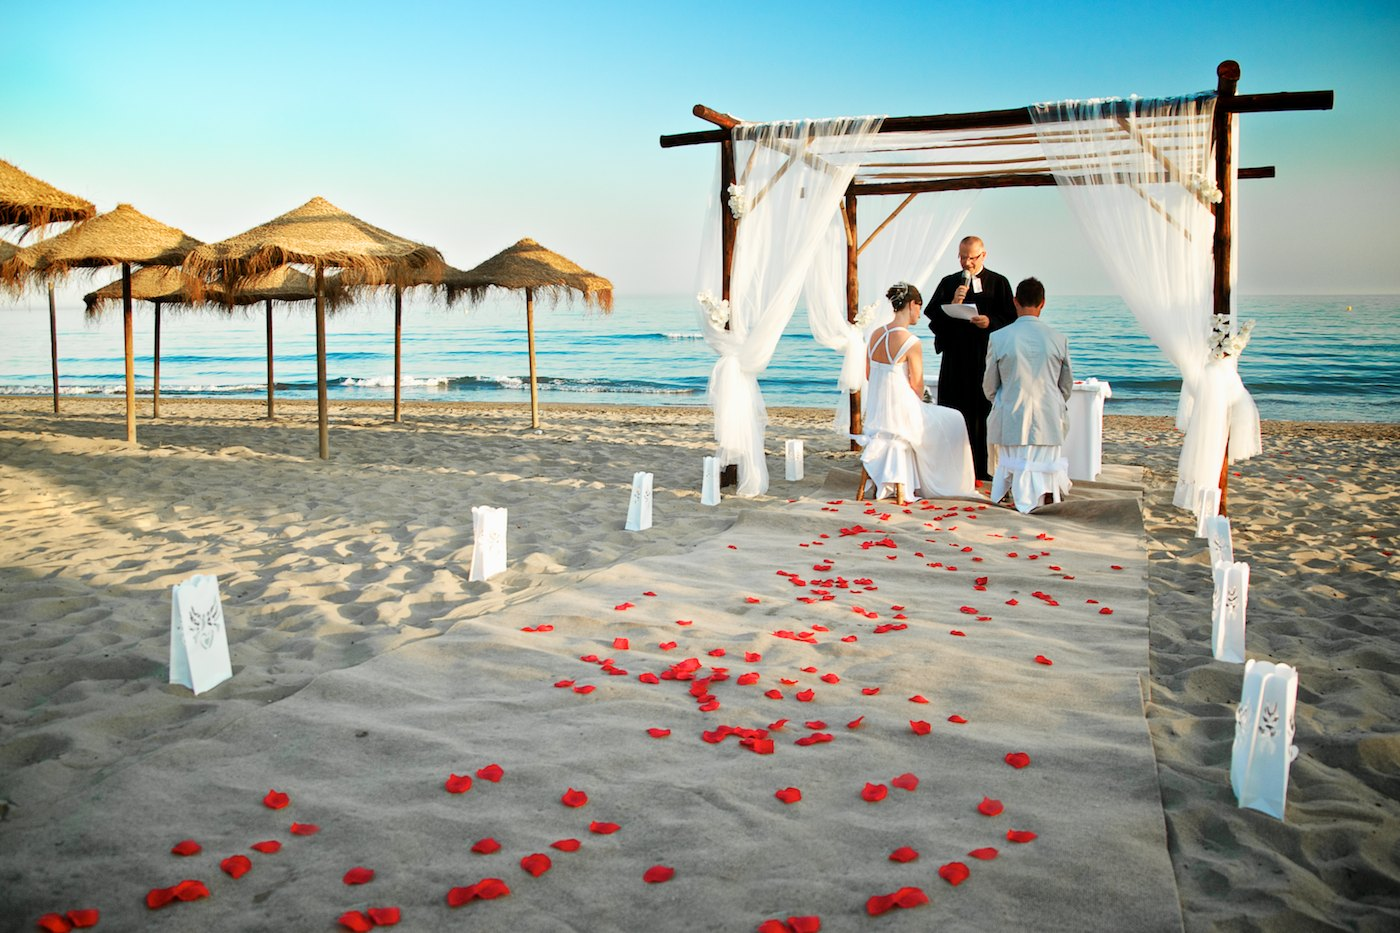 beach wedding ideas romantic decoration